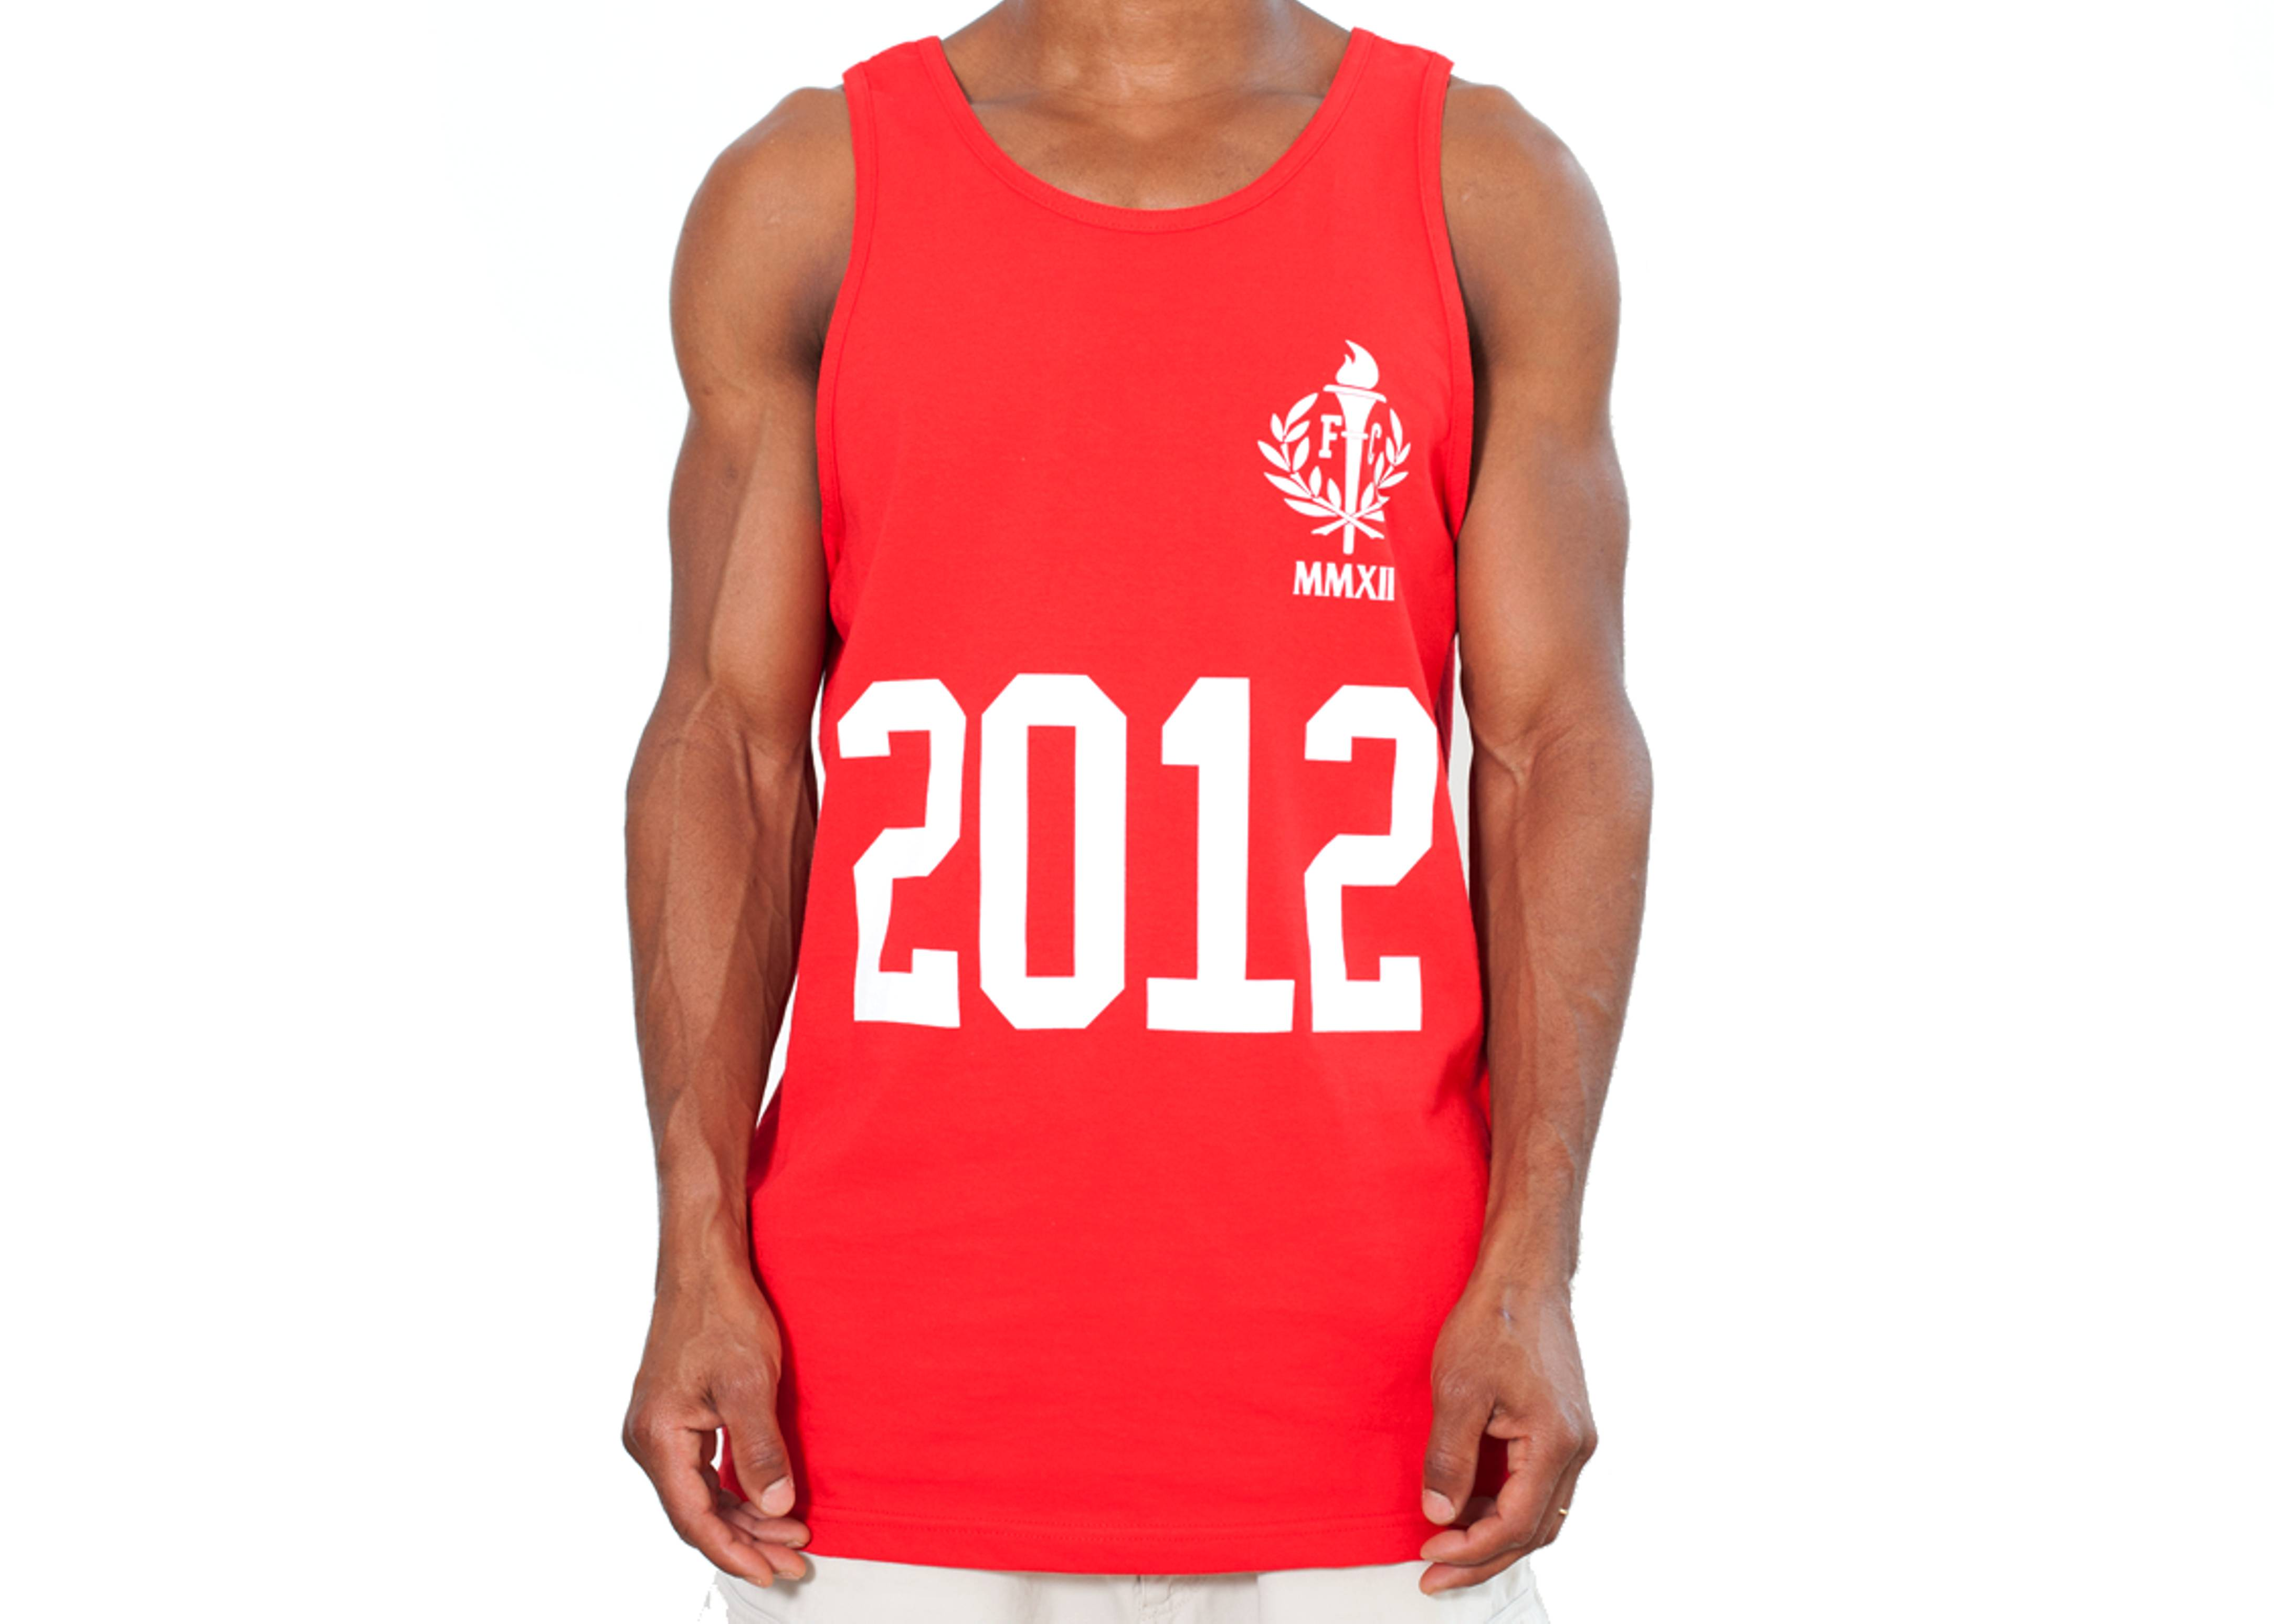 fcny 2012 tank top